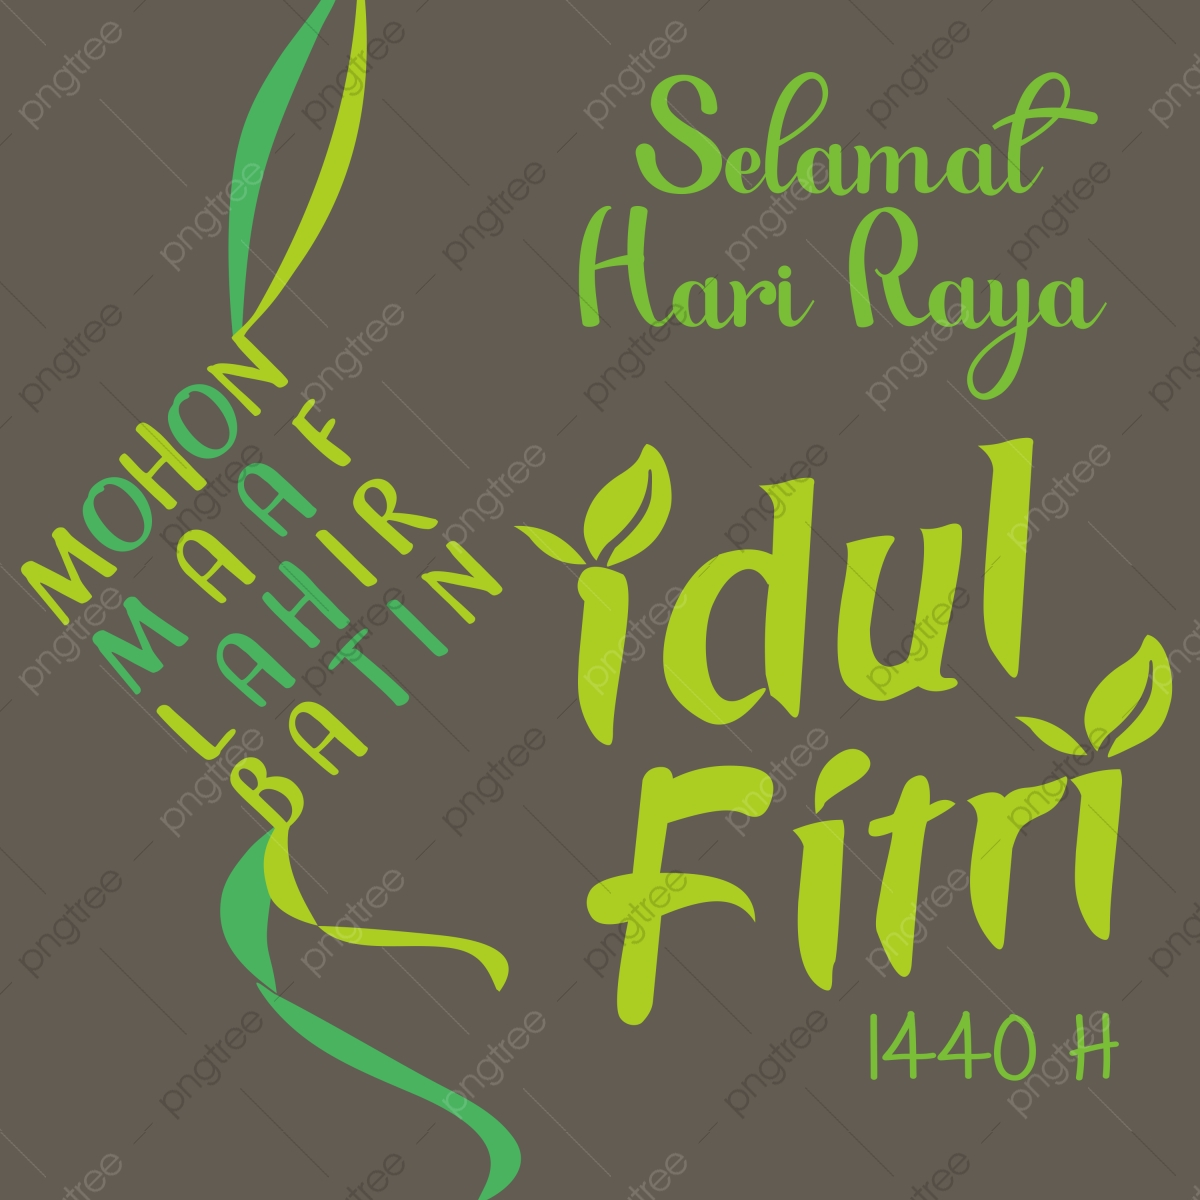 Idul Fitri Png Images Vector And Psd Files Free Download On